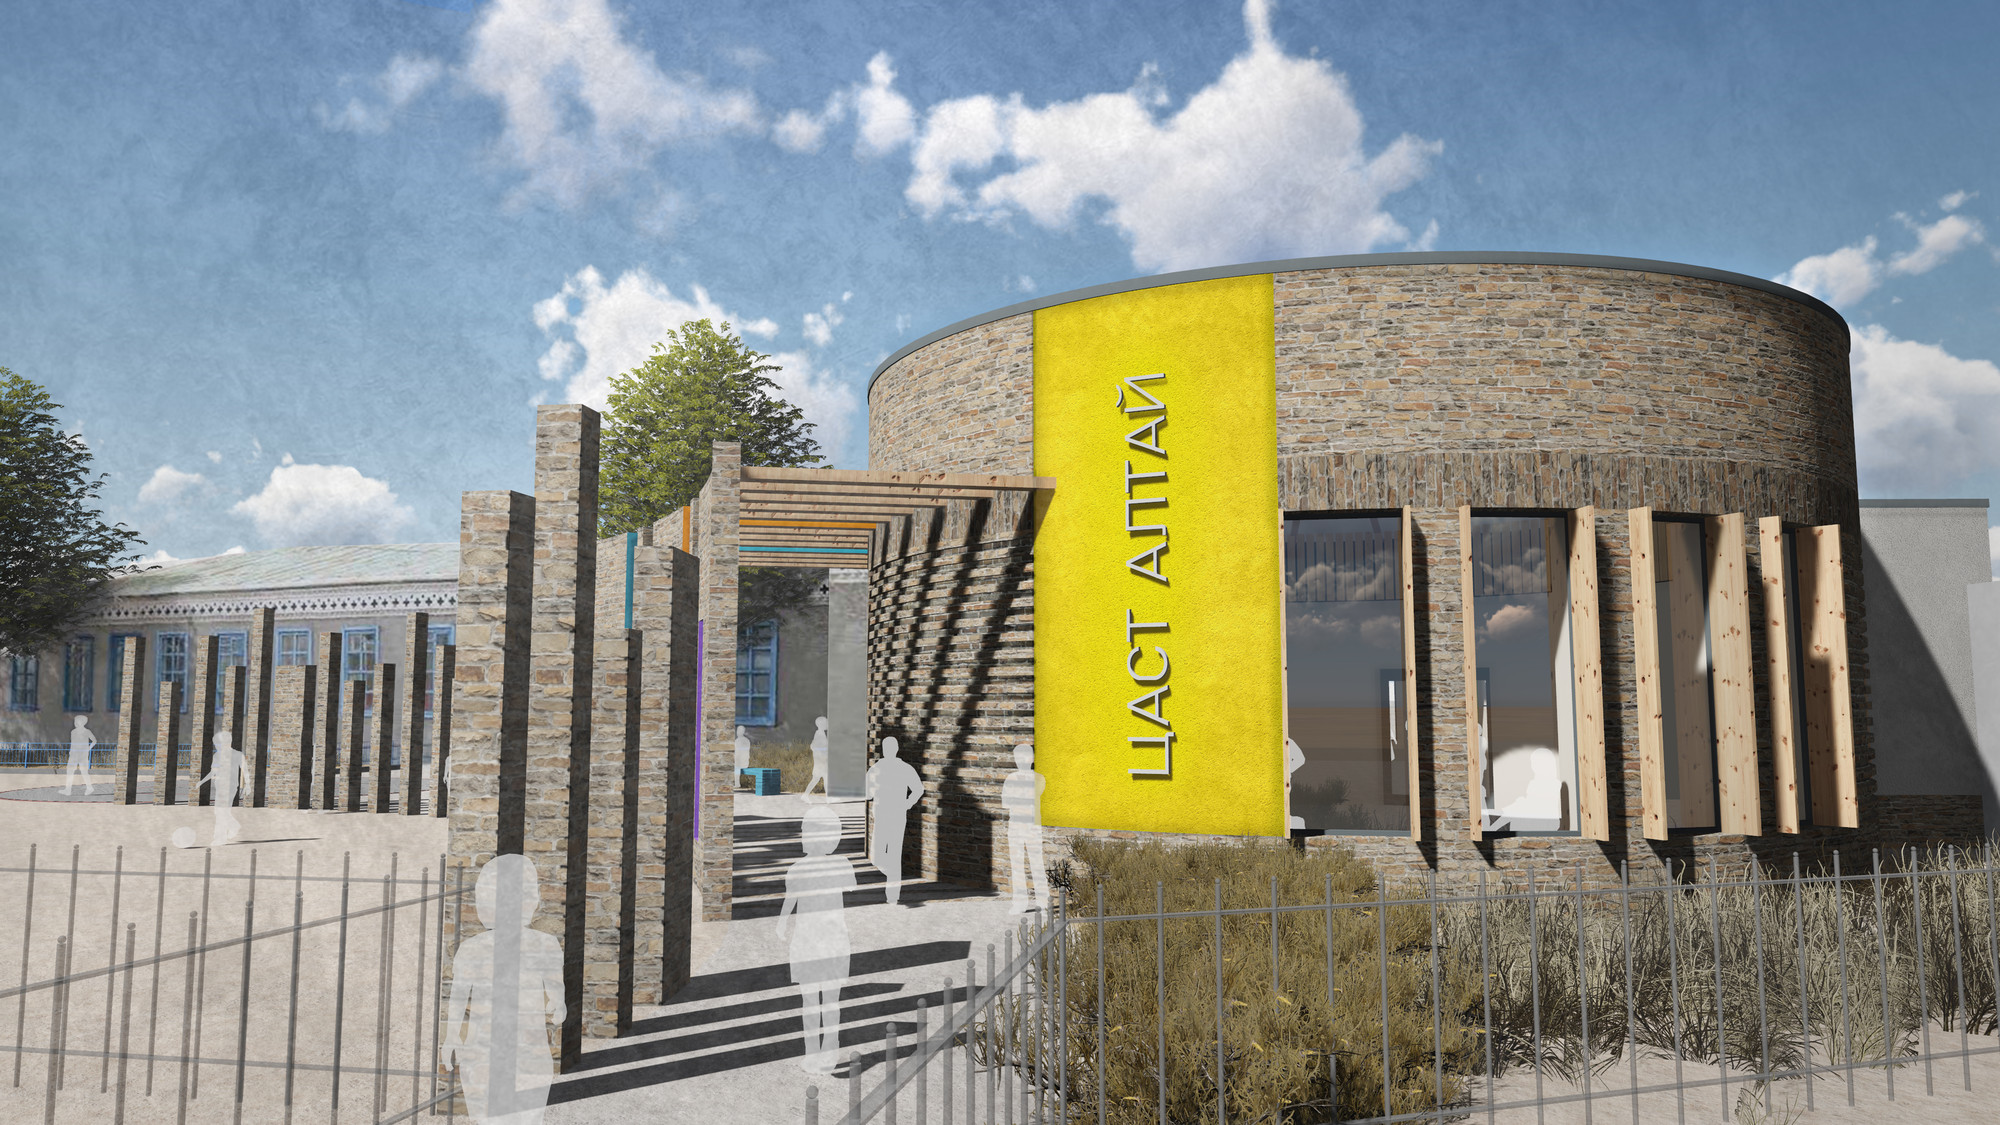 PLACE By Design Wins Cool School Design Competition, Courtesy of Building Trust International